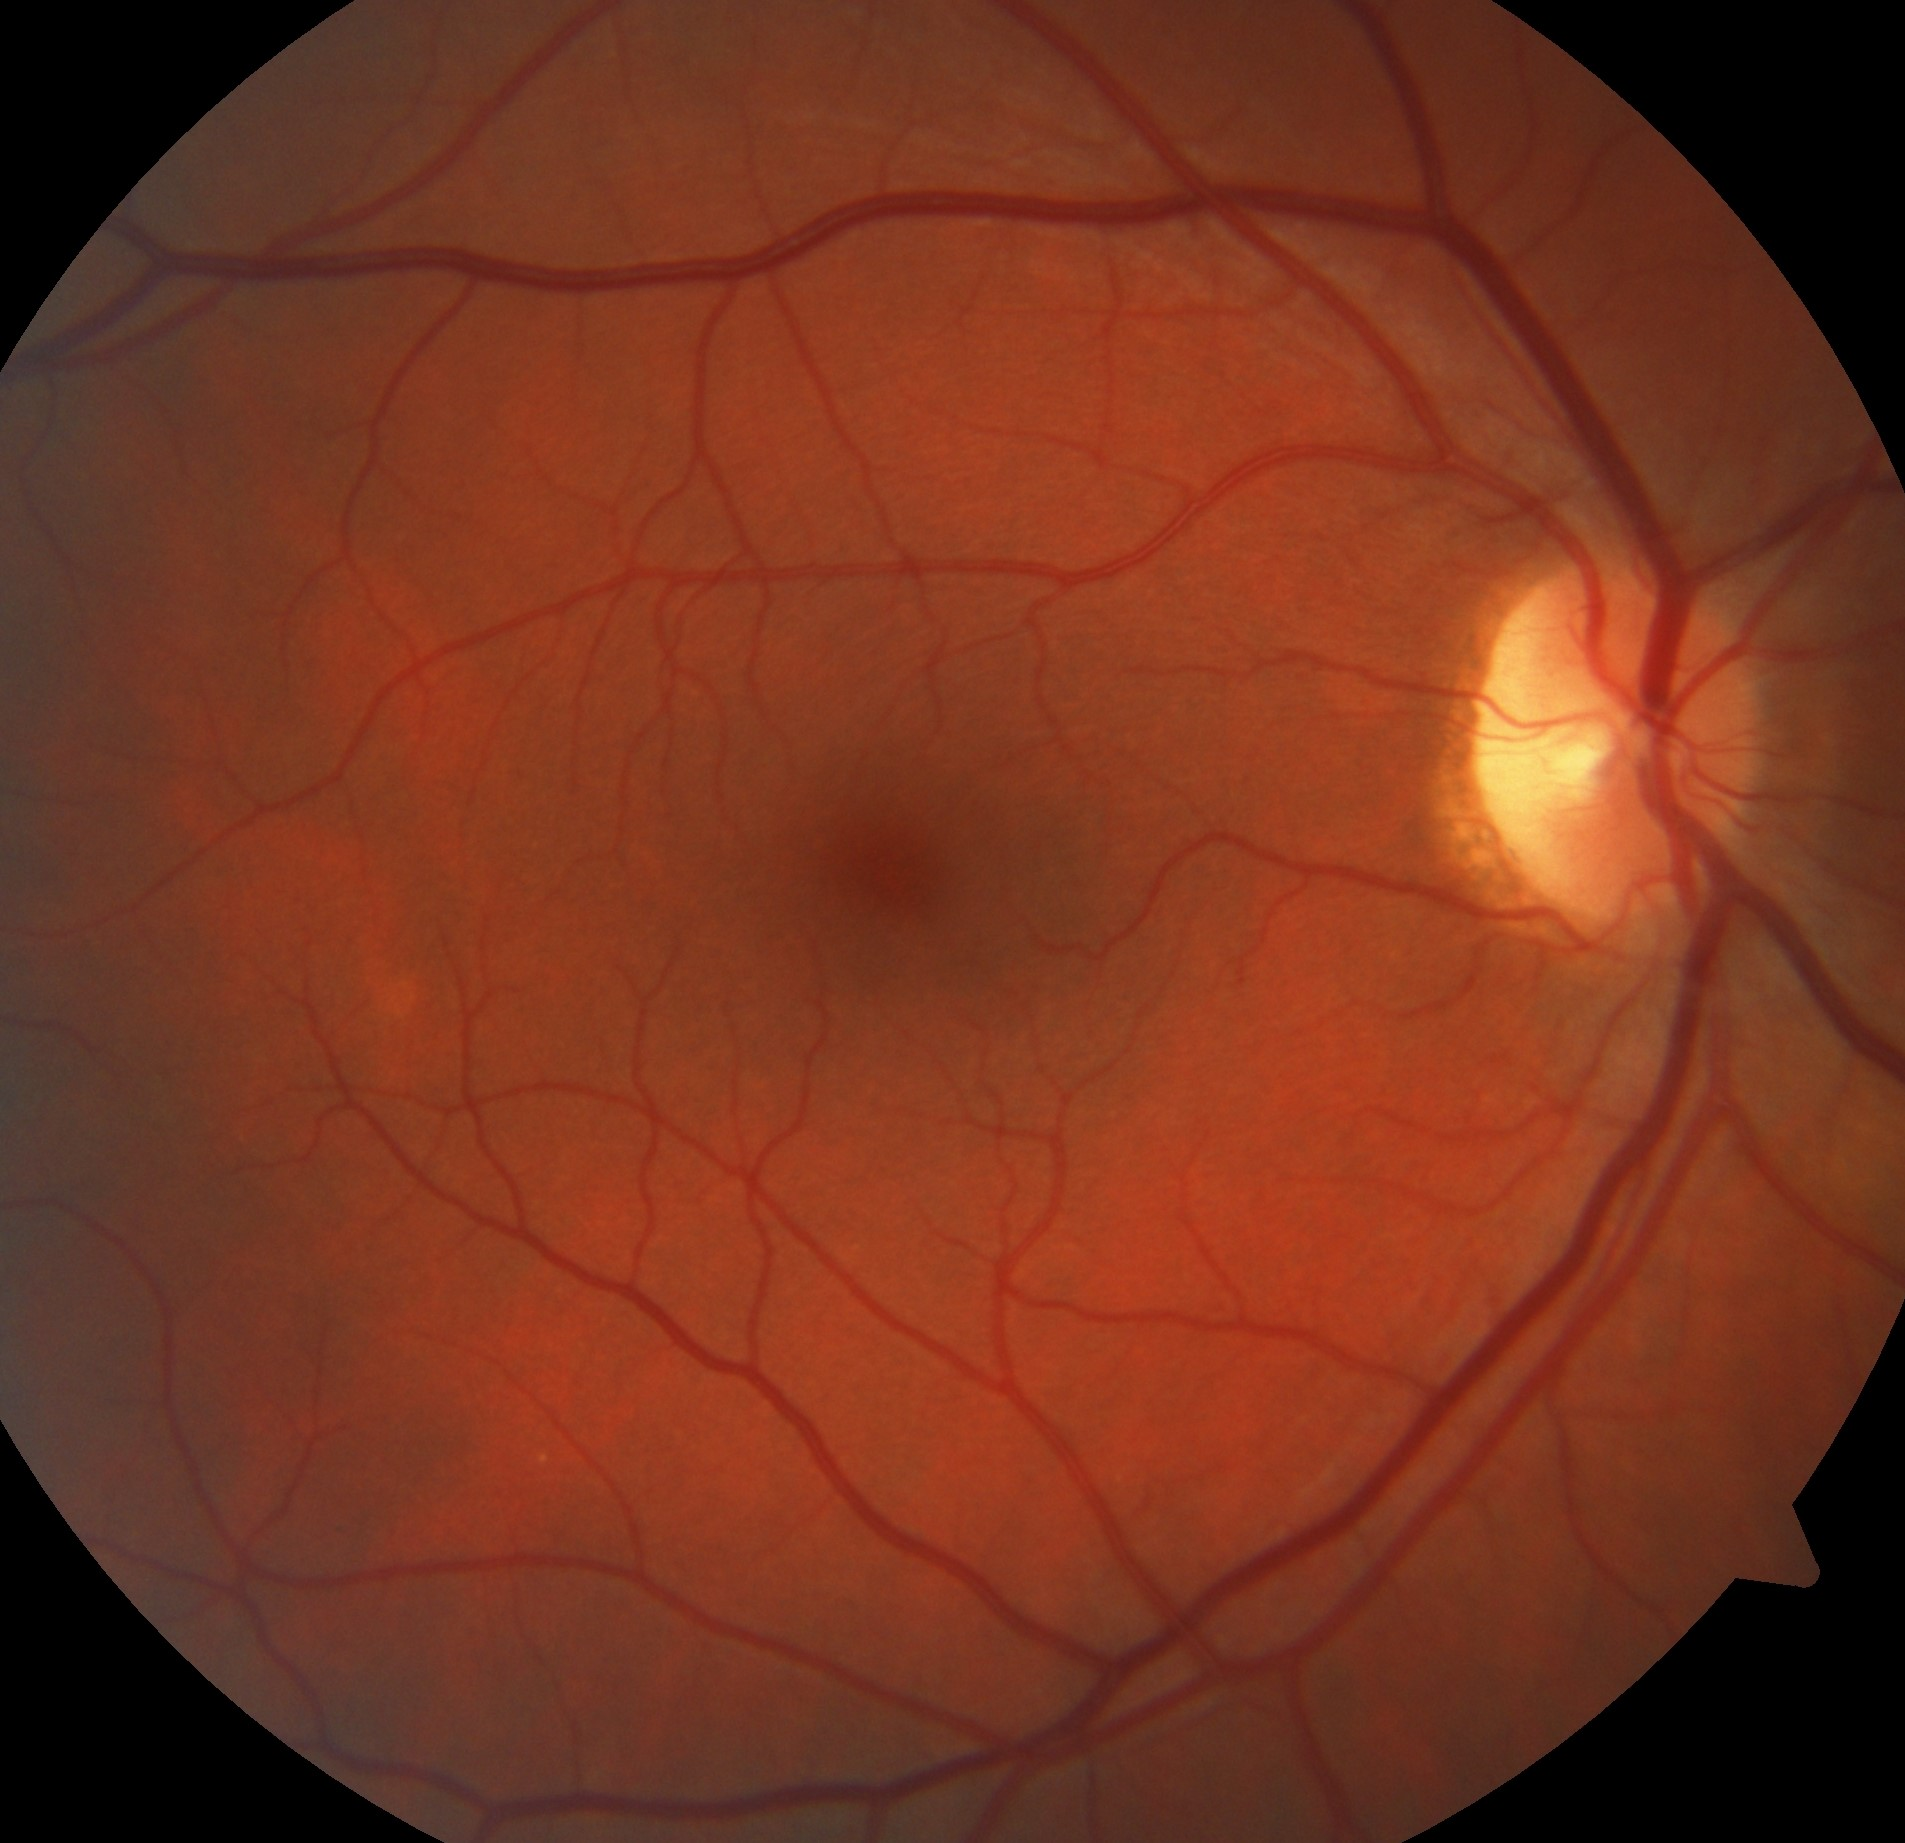 Retinal Imaging for Brain Disease